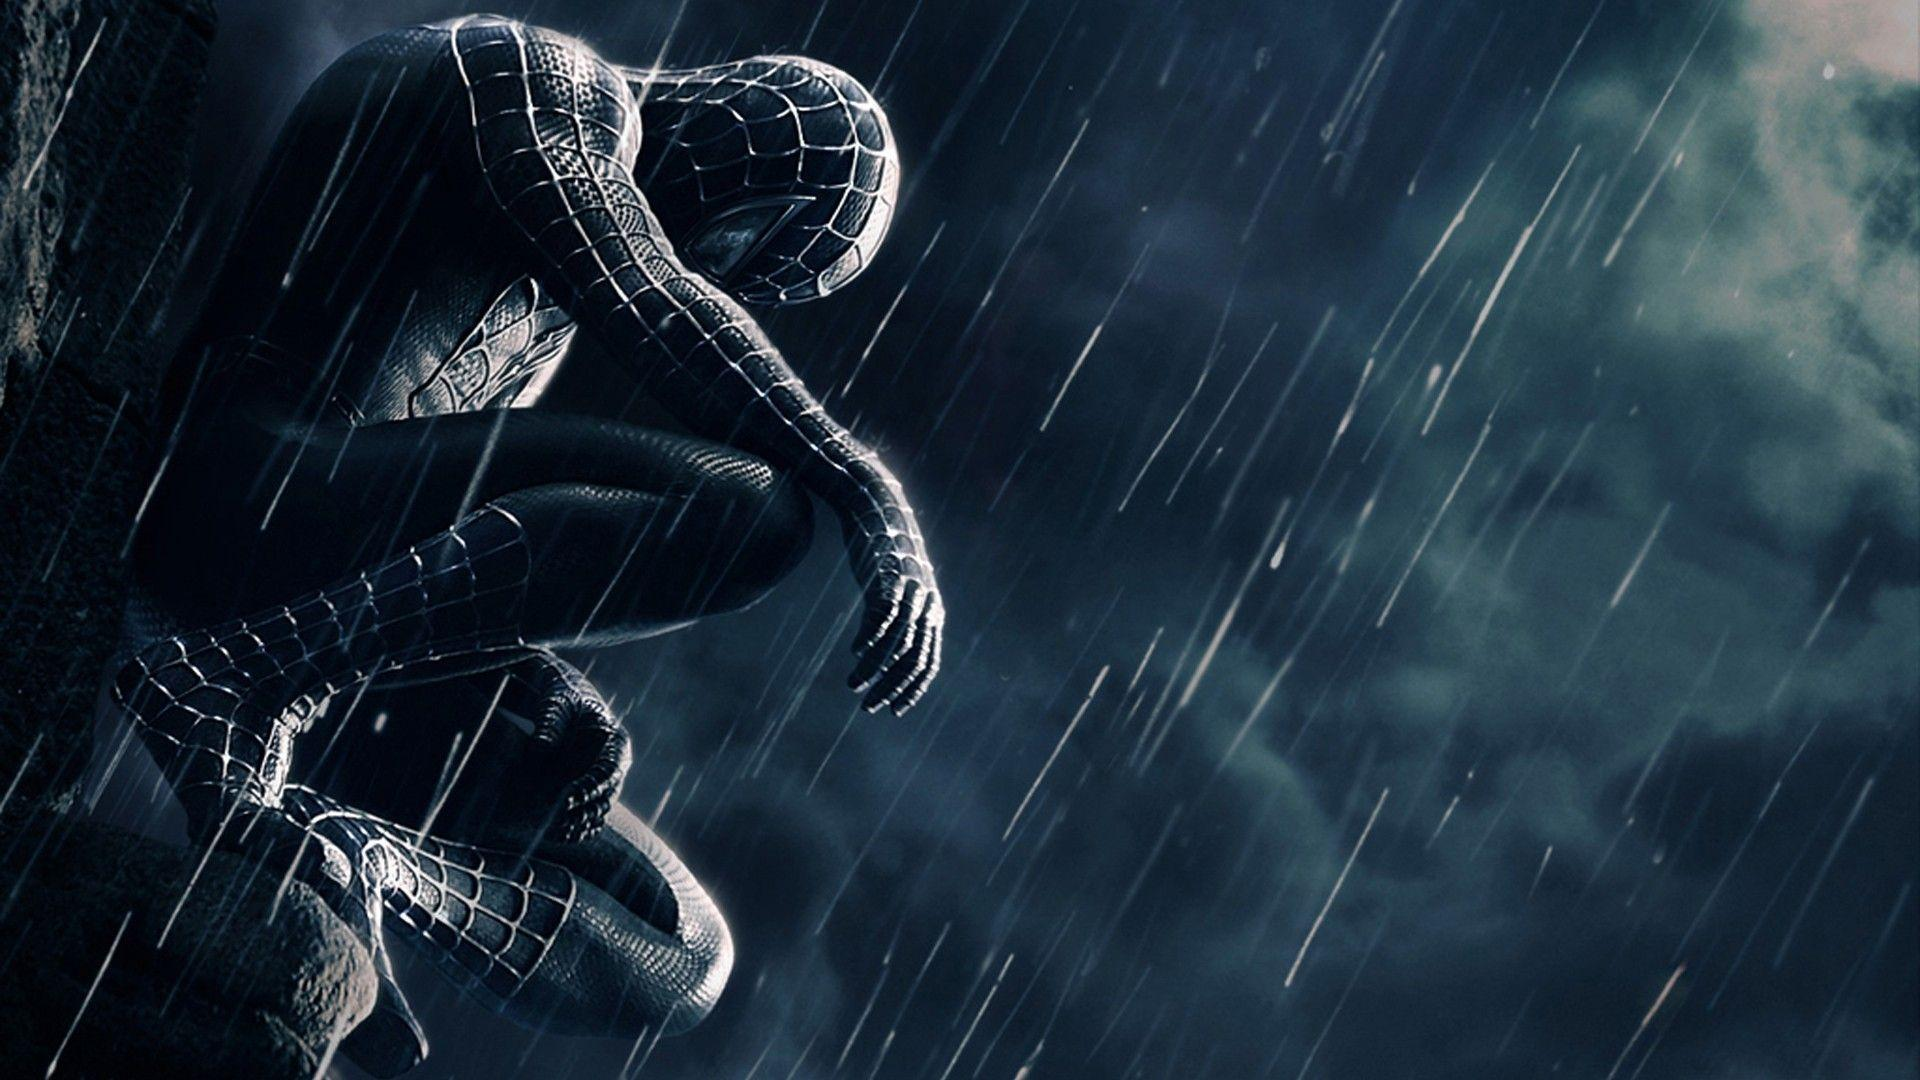 10 Best Spider Man 2099 Wallpaper Full Hd 1080p For Pc: Spider-Man 3 Wallpapers